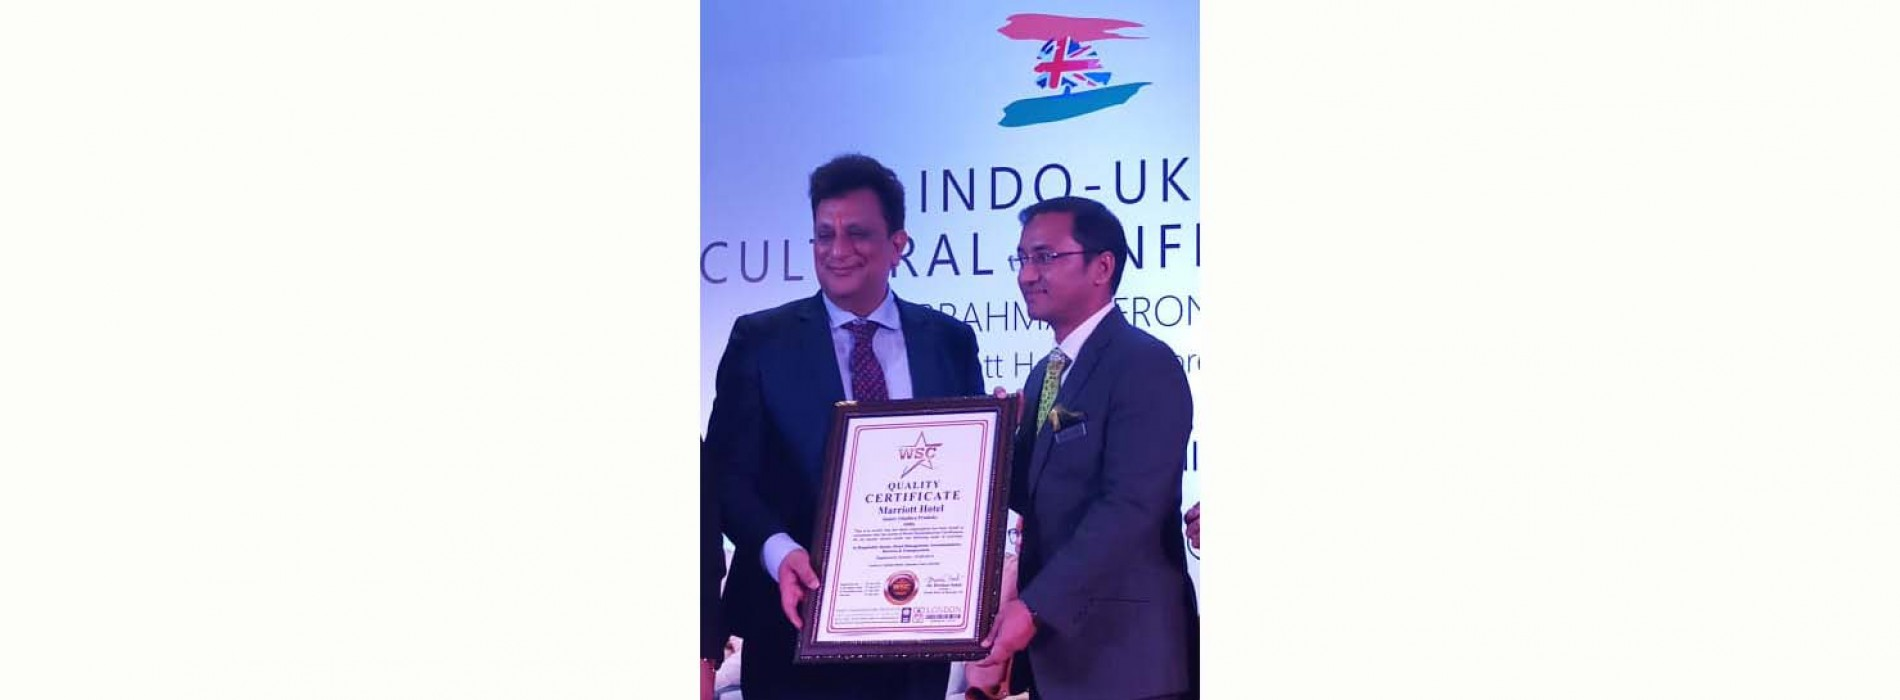 Indore Marriott hotel awarded with 'Quality Certificate' by World Book of Records